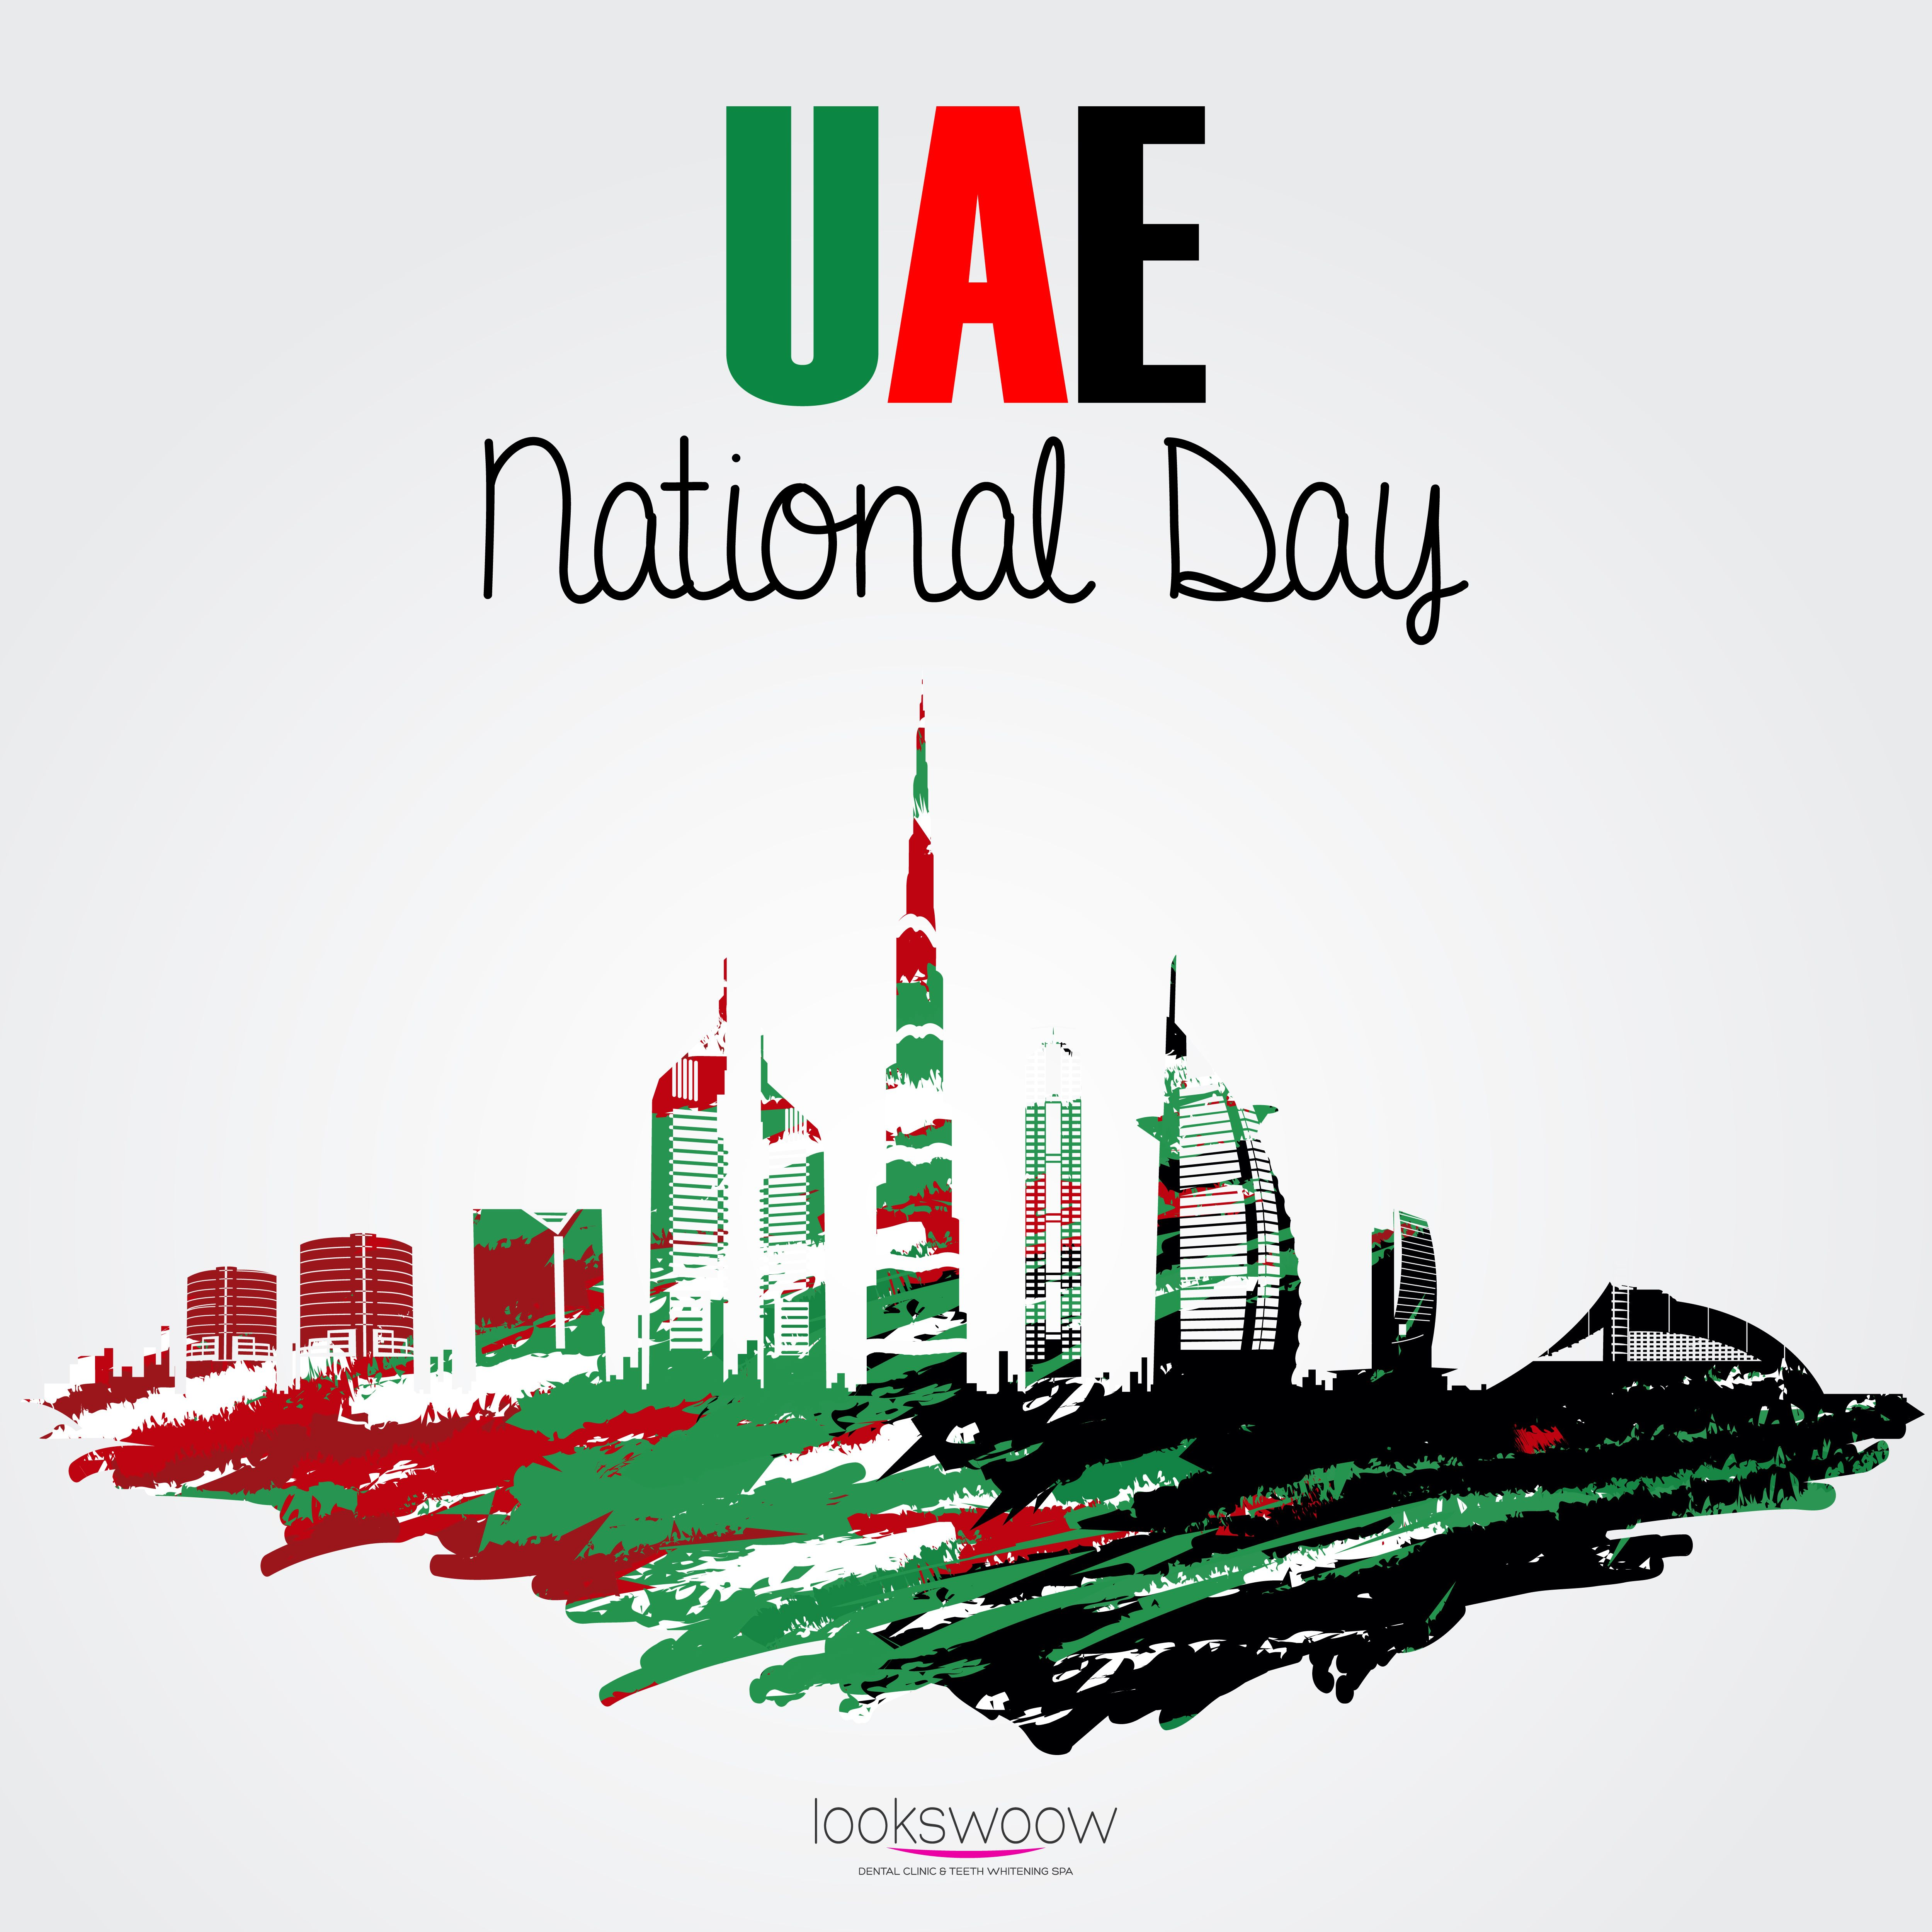 Uae National Day Quotes: #Lookswoow Wishes All Residents Of UAE A Happy National